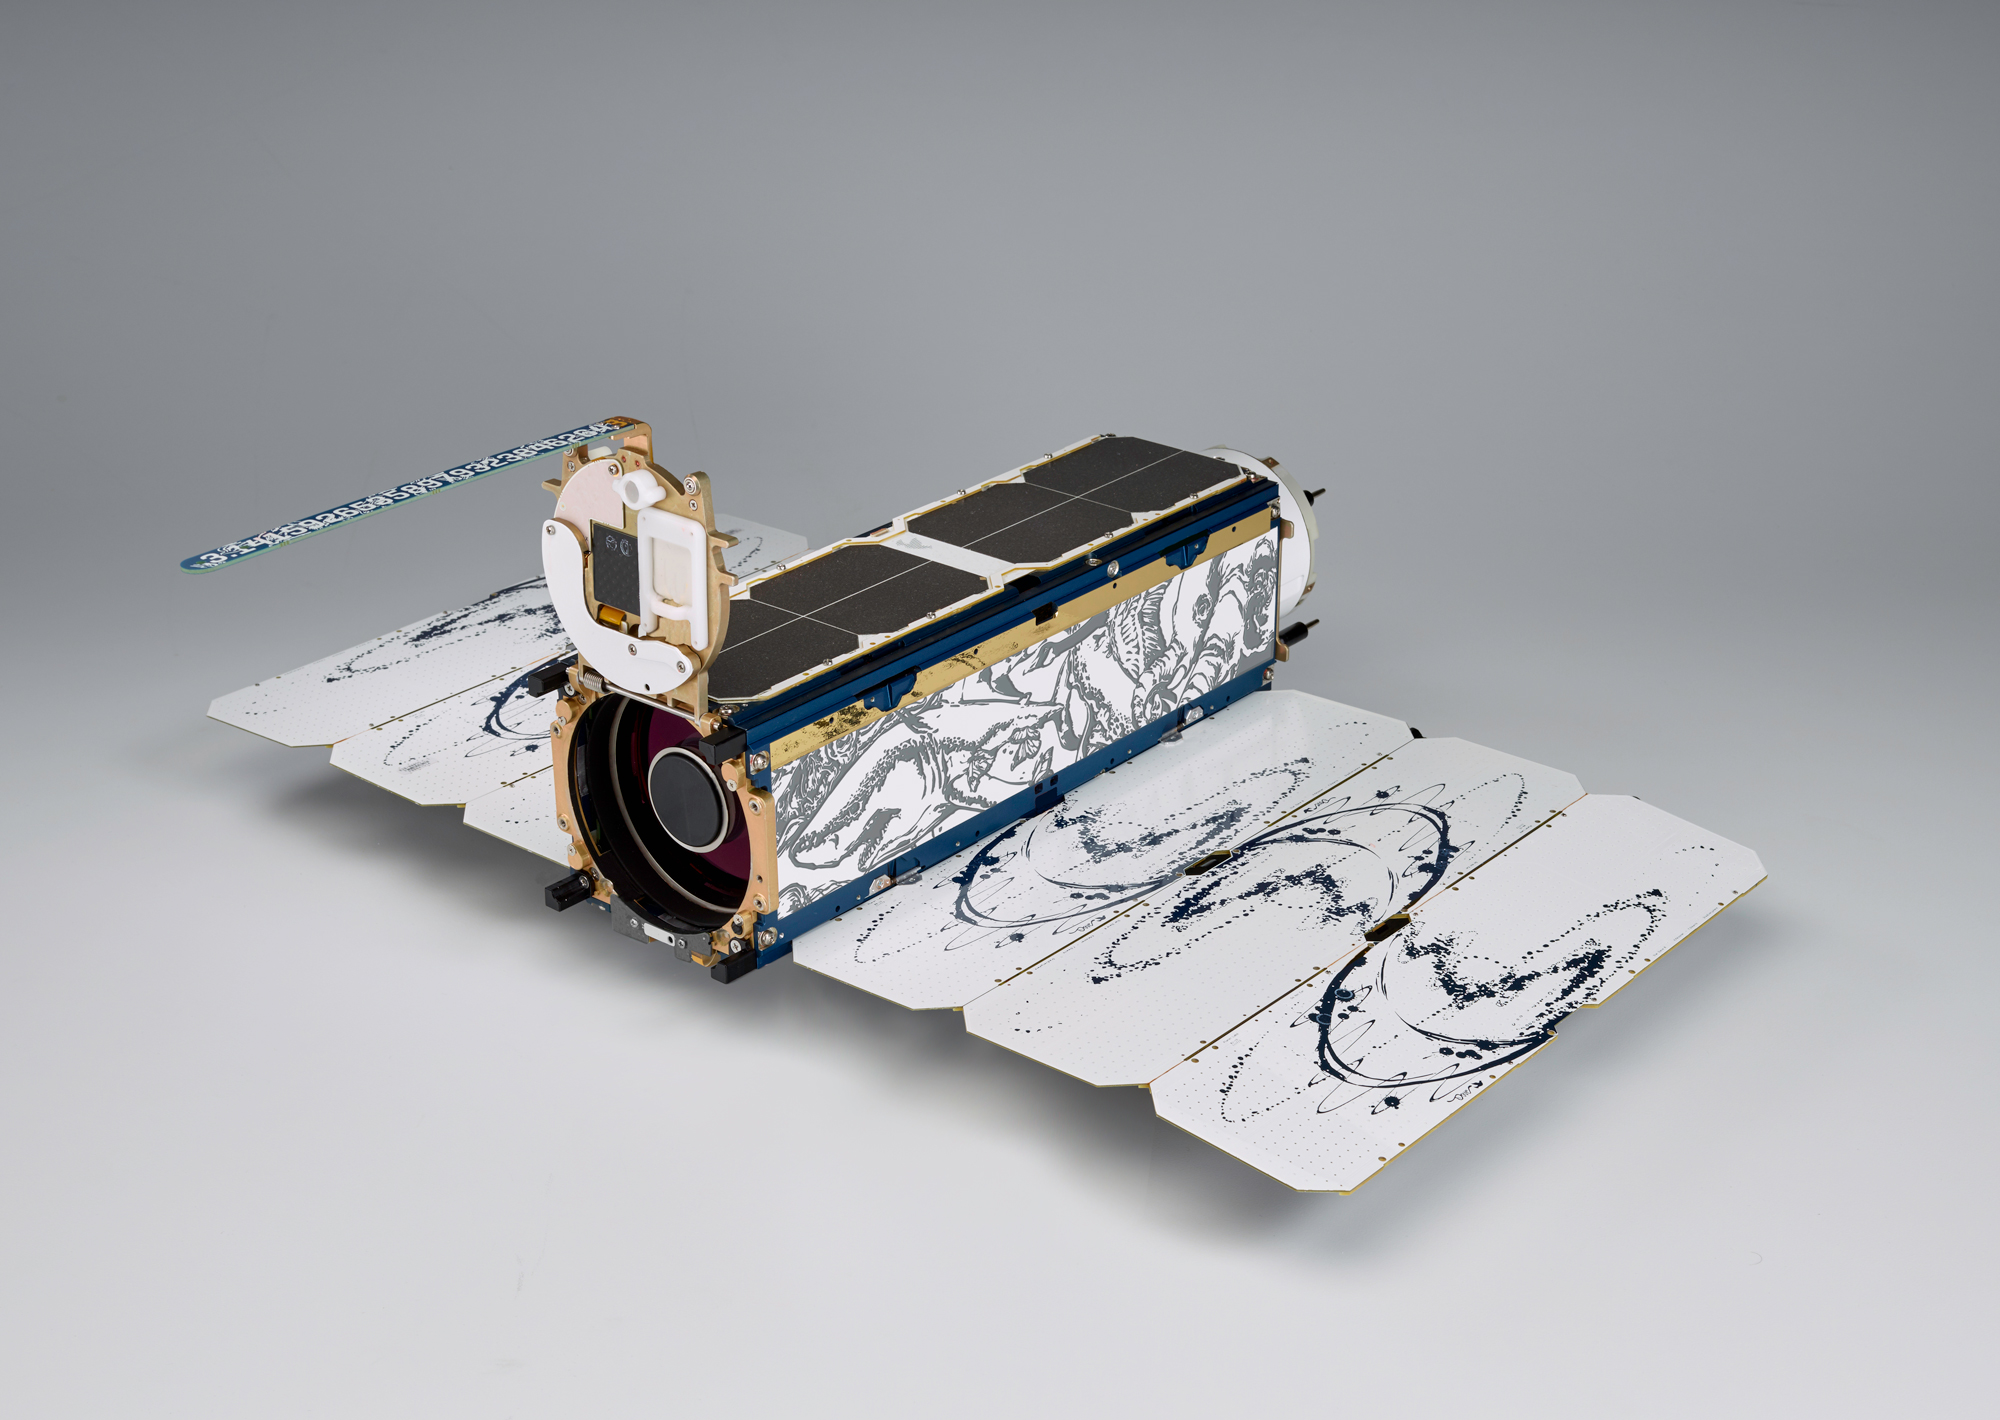 Planet Labs's backpack-sized satellites will soon be able to image the entire planet daily.